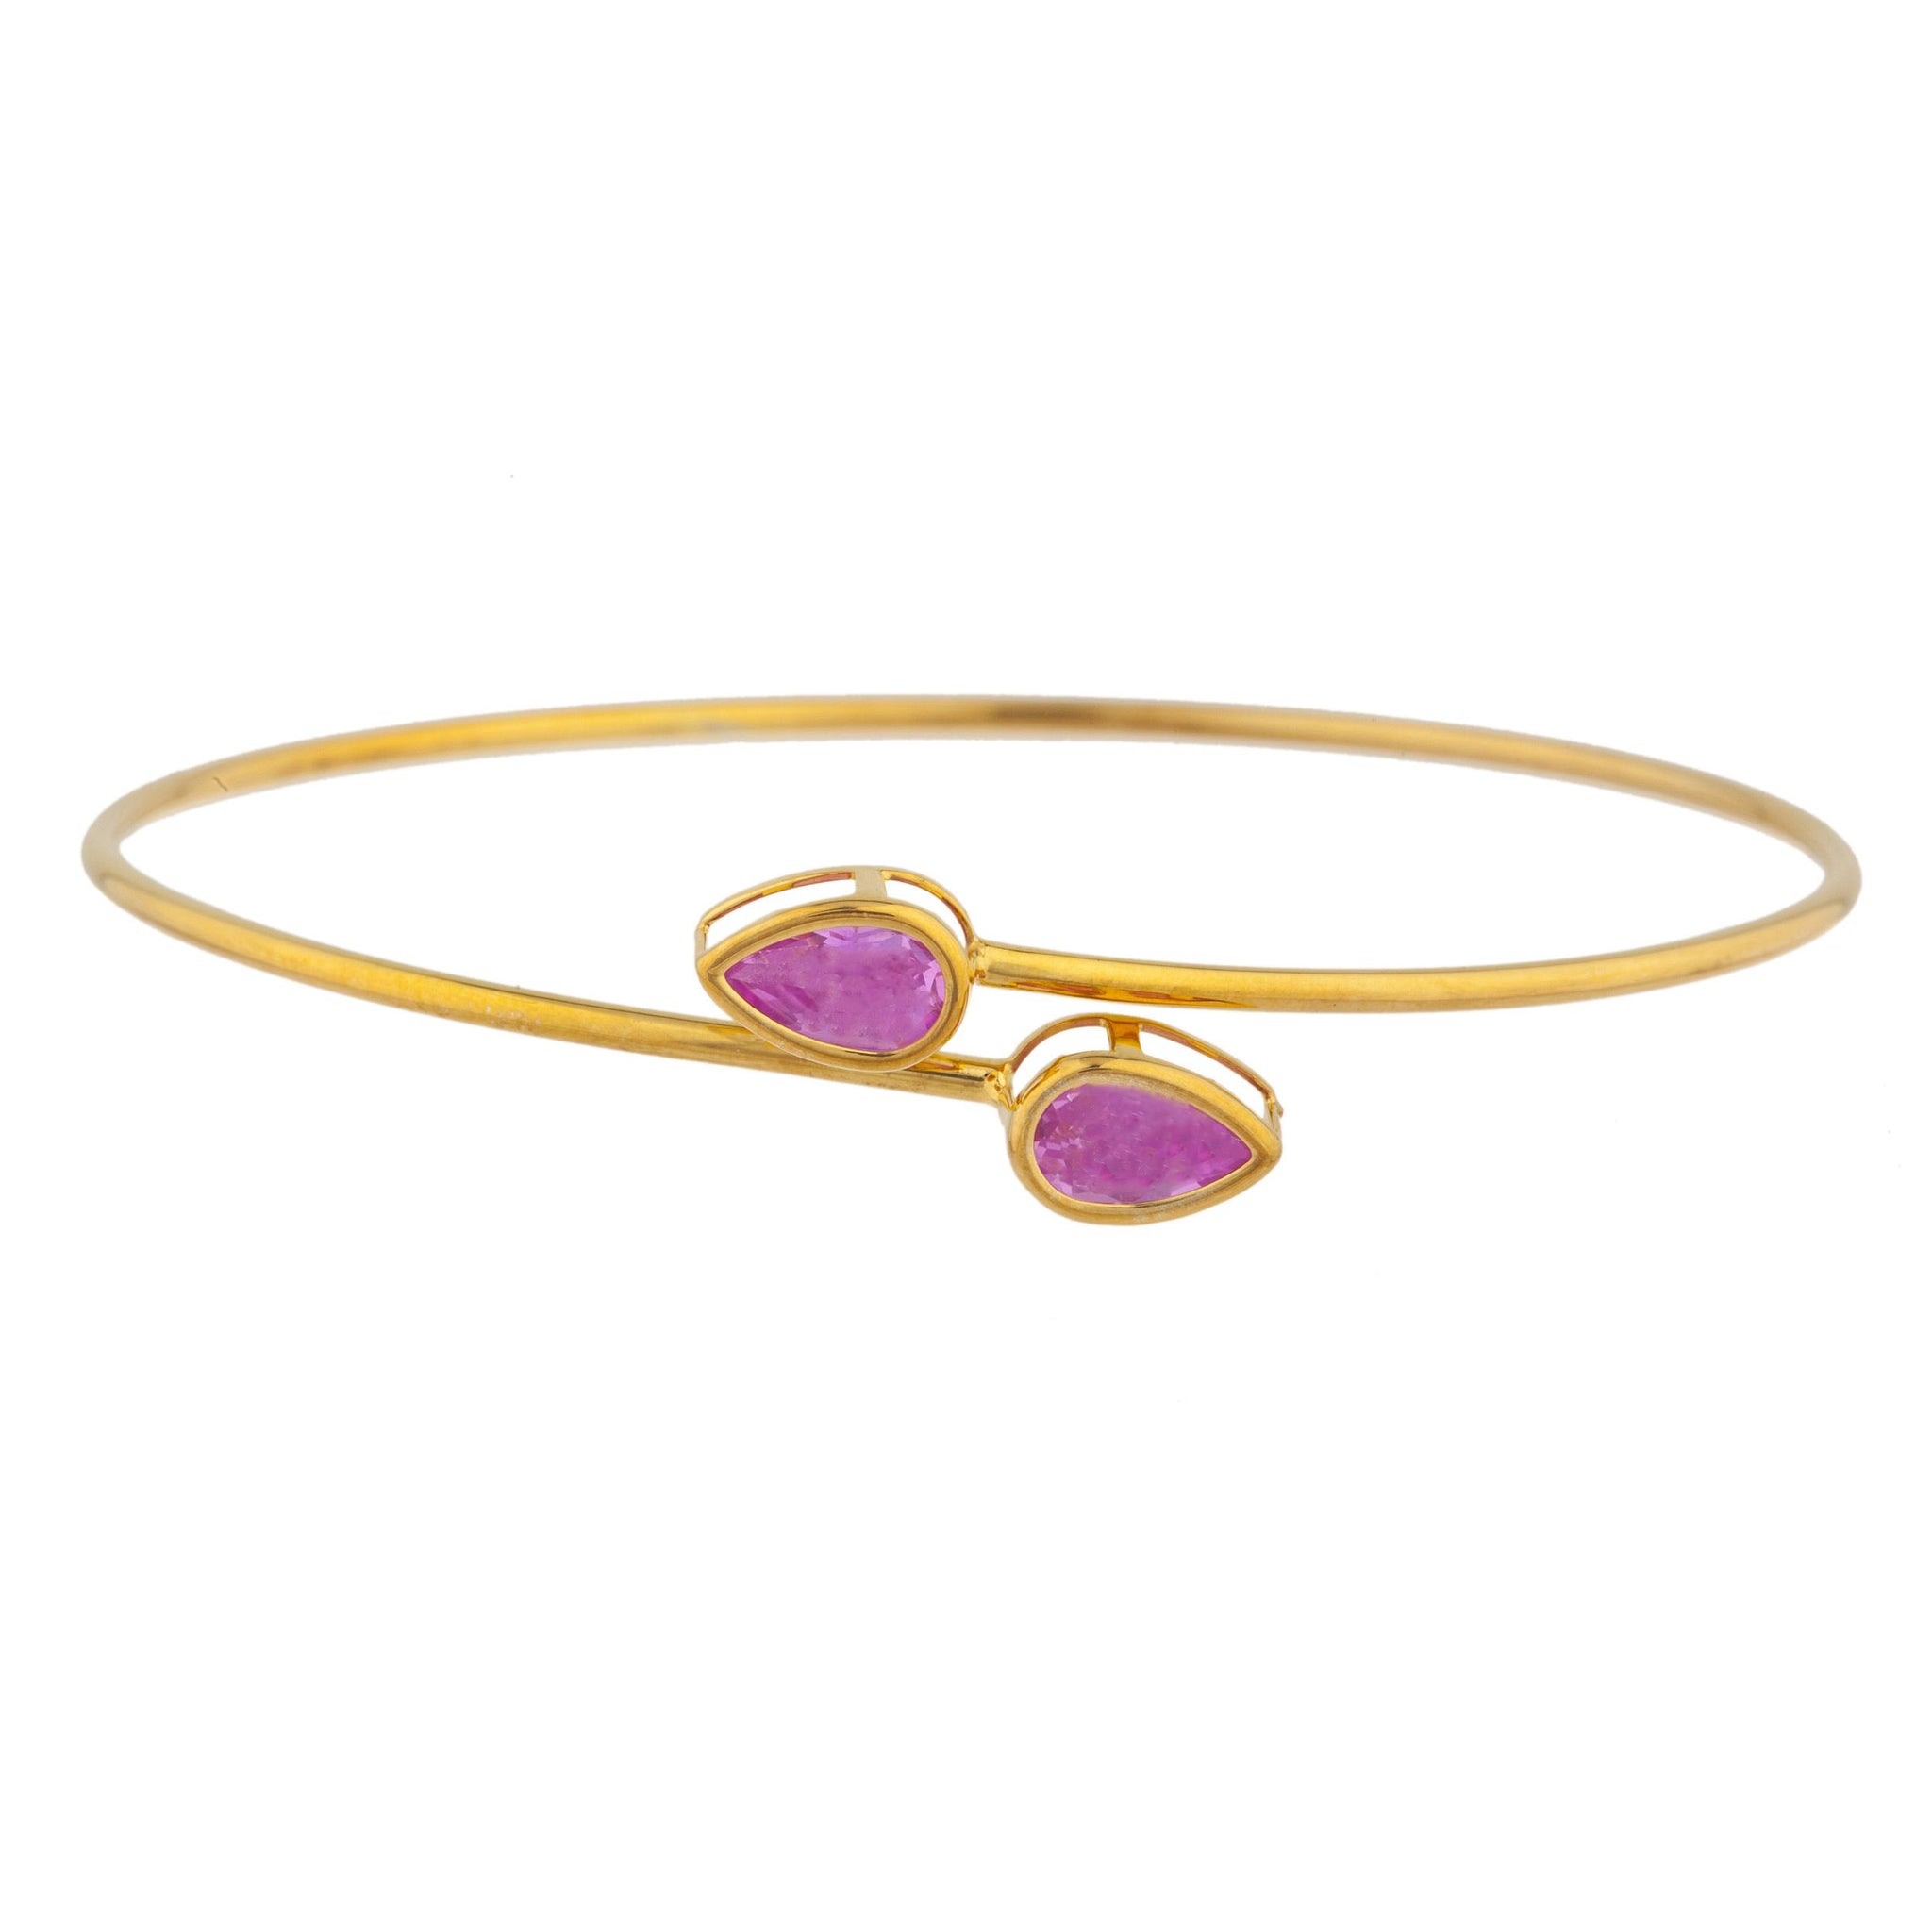 14Kt Yellow Gold Plated Pink Sapphire Pear Bezel Bangle Bracelet